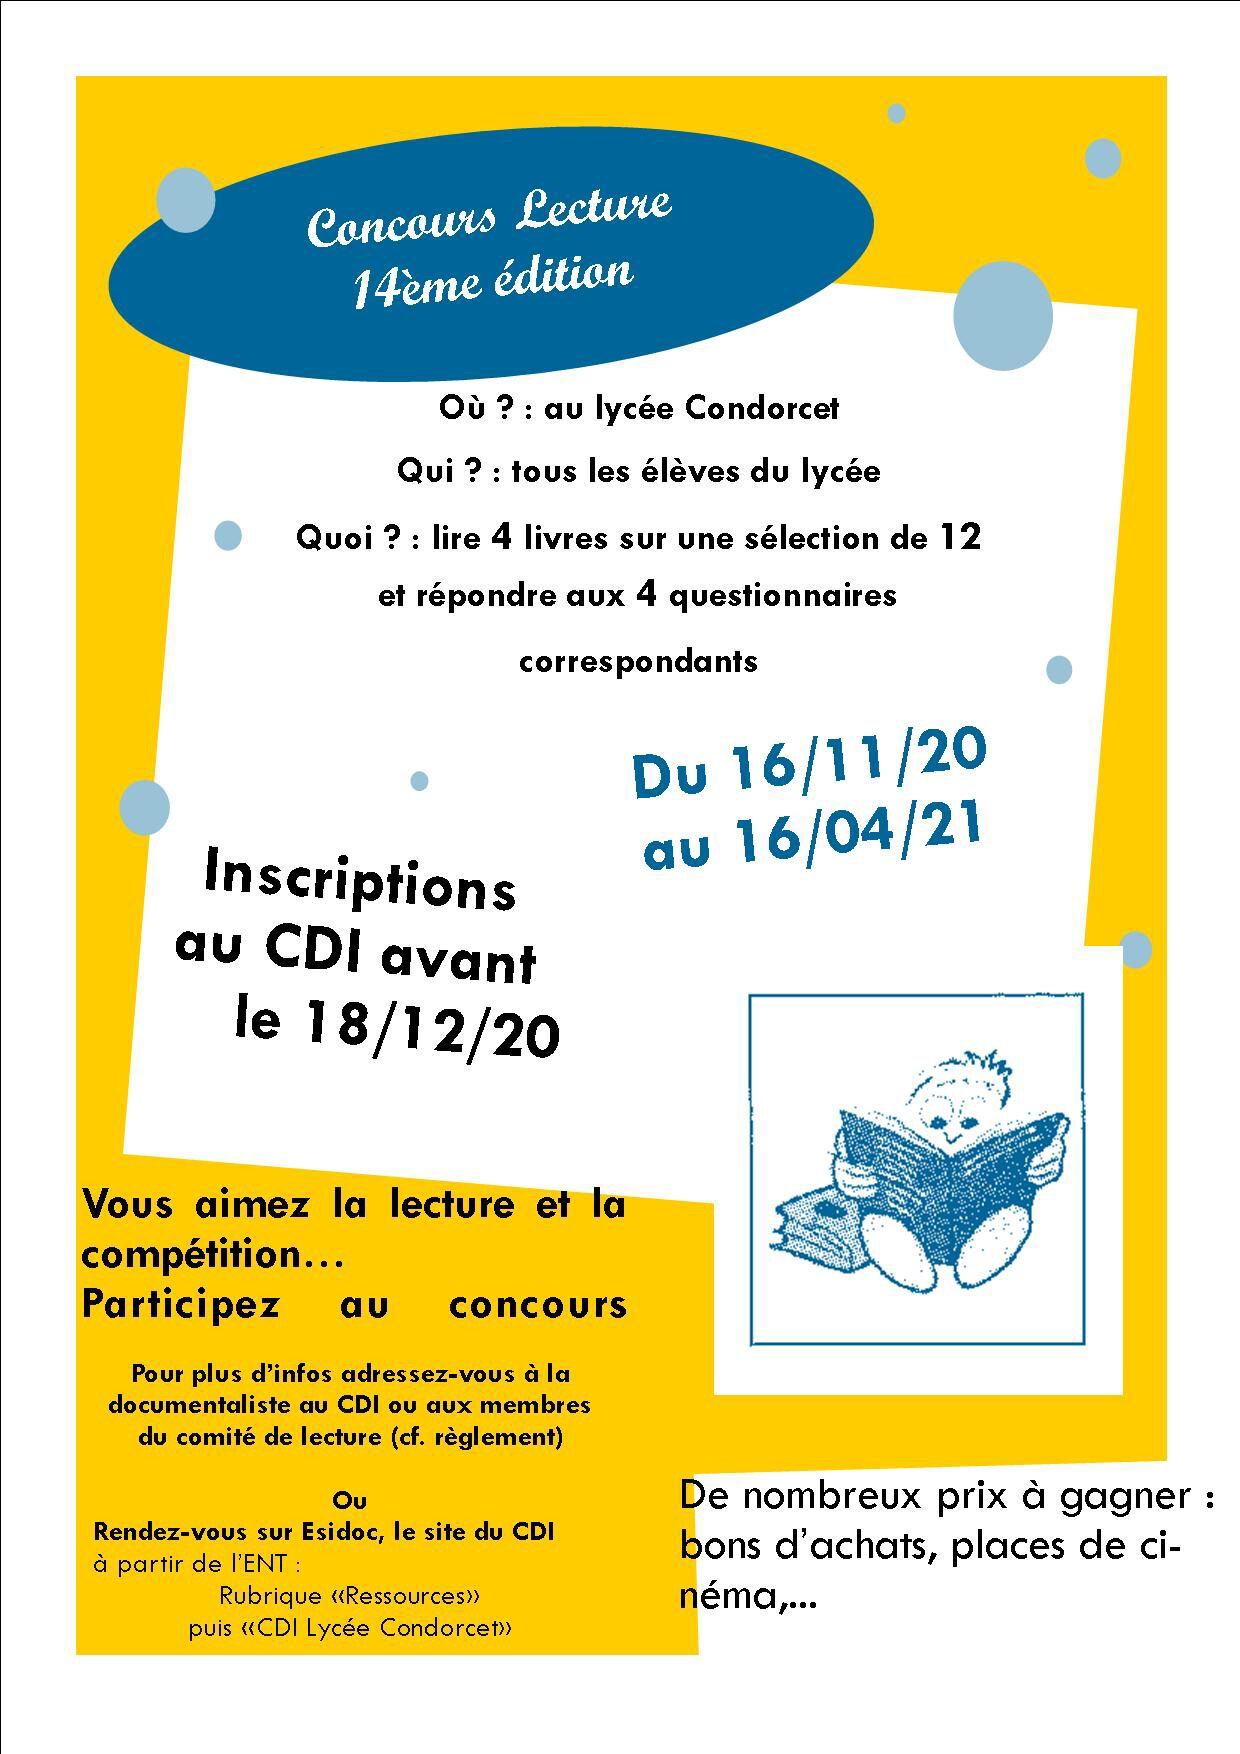 Affiche concours 20.jpg